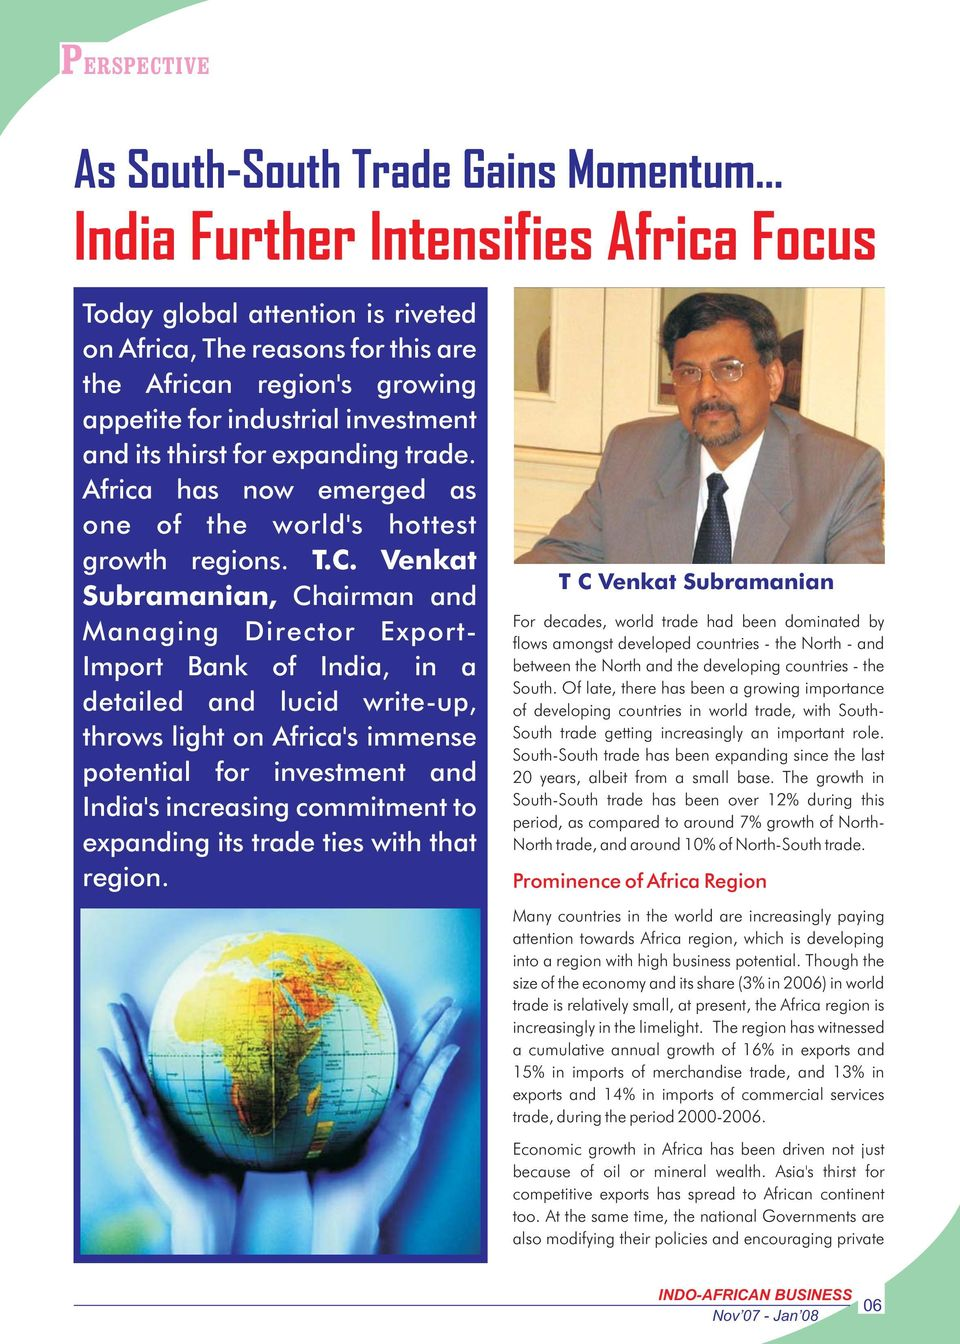 Venkat Subramanian, Chairman and Managing Director Export- Import Bank of India, in a detailed and lucid write-up, throws light on Africa's immense potential for investment and India's increasing